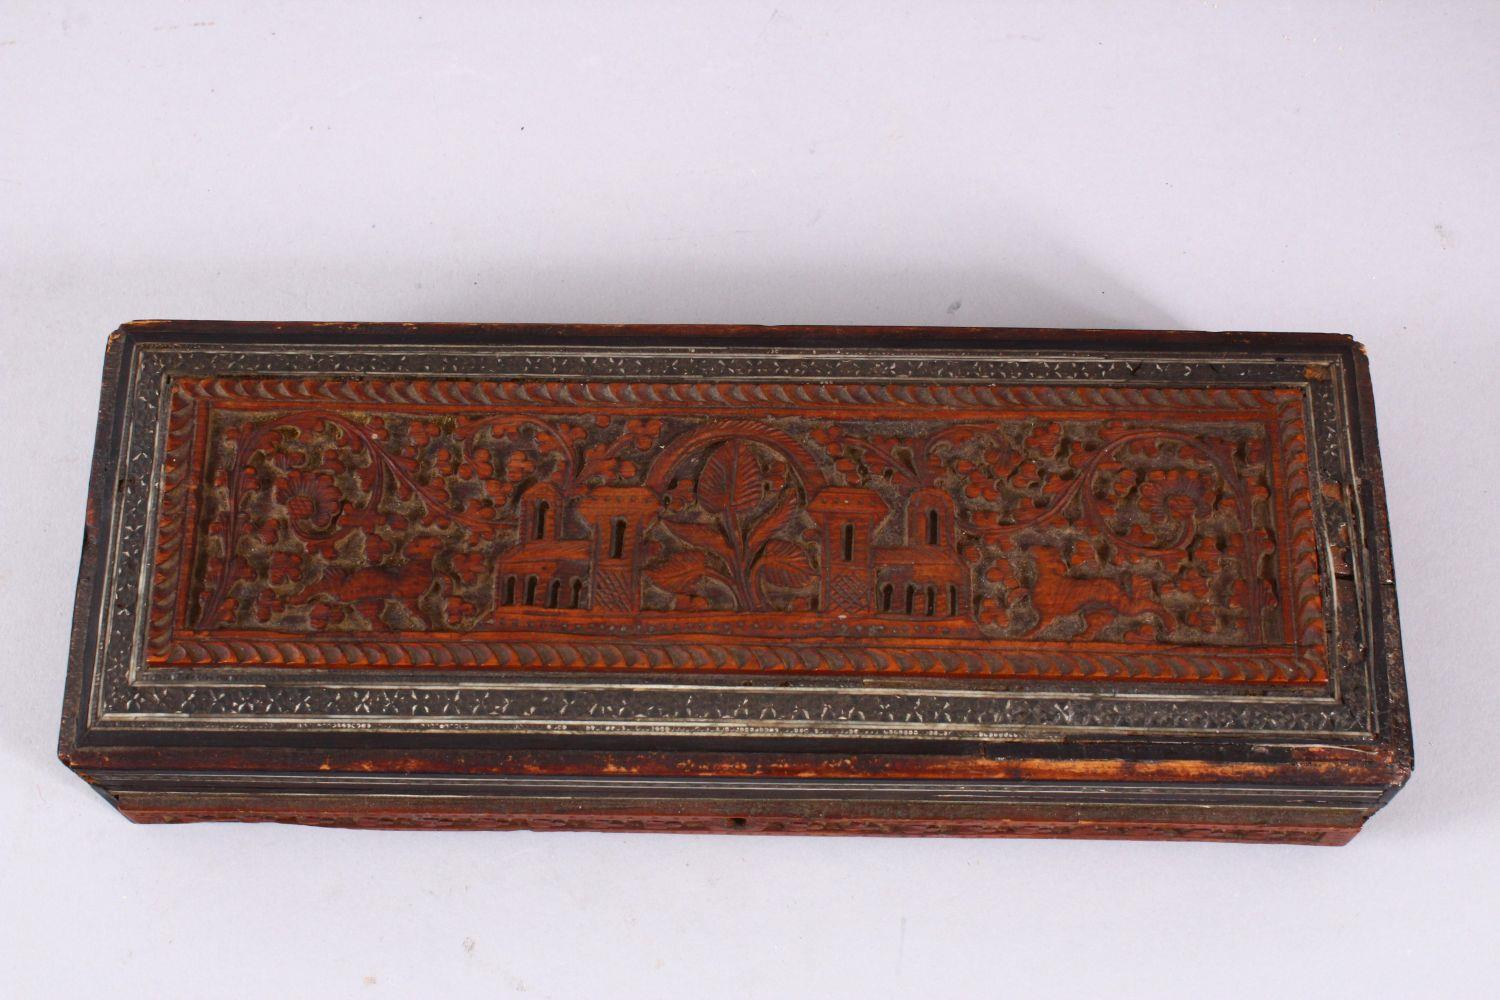 A 19TH / 20TH CENTURY INDIAN CARVED WOODEN BOX, carved with temples, animals and foliage, with - Image 2 of 4